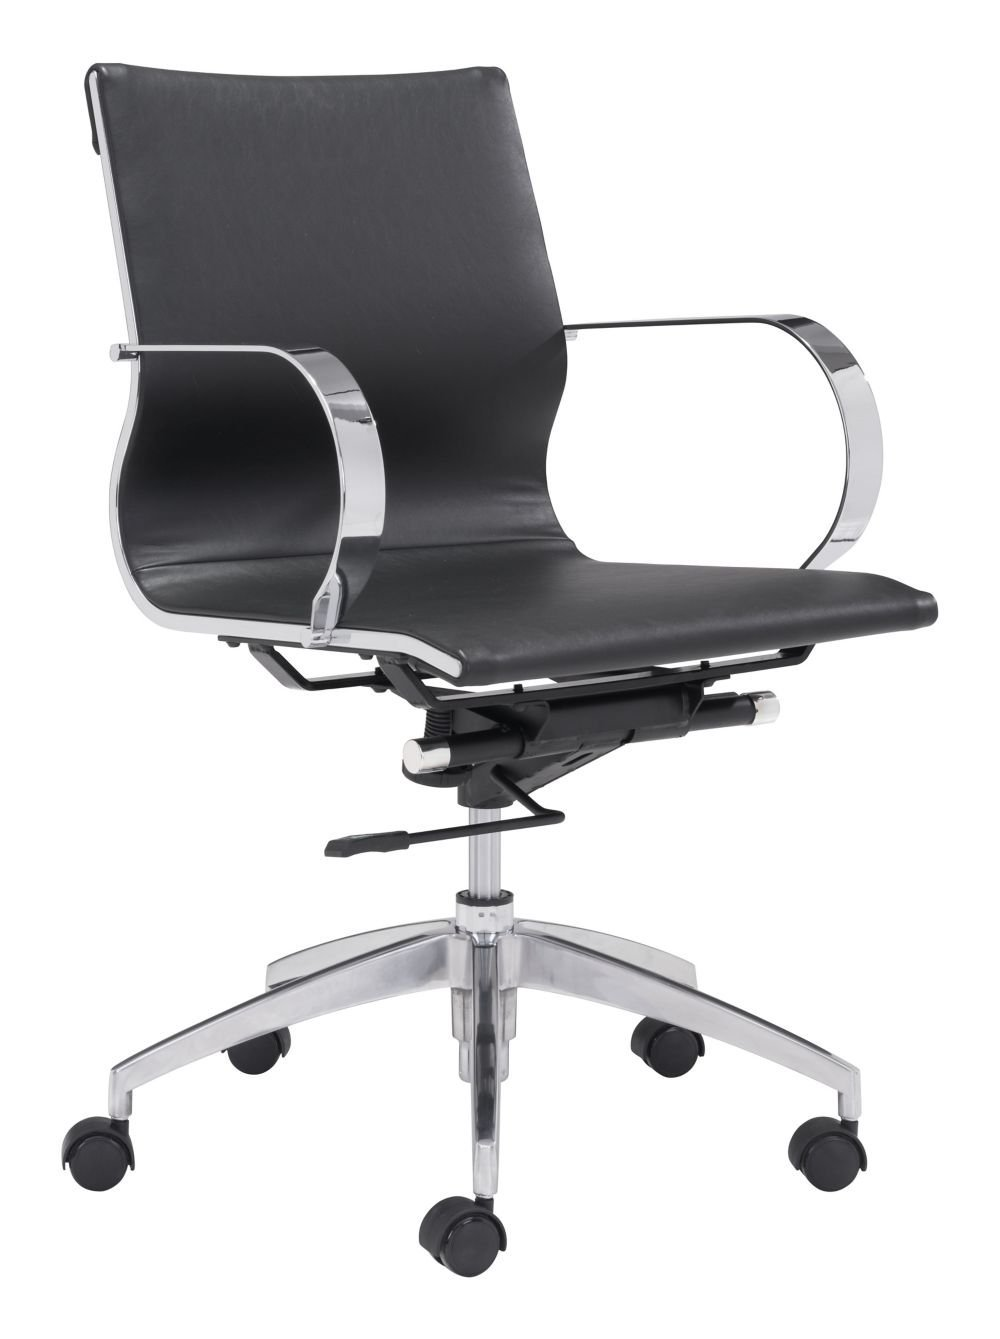 """Glider Low Back Office Chair Black Dimensions: 27.6""""W x 27.6""""D x 33.9-36""""H Weight: 34 lbs"""